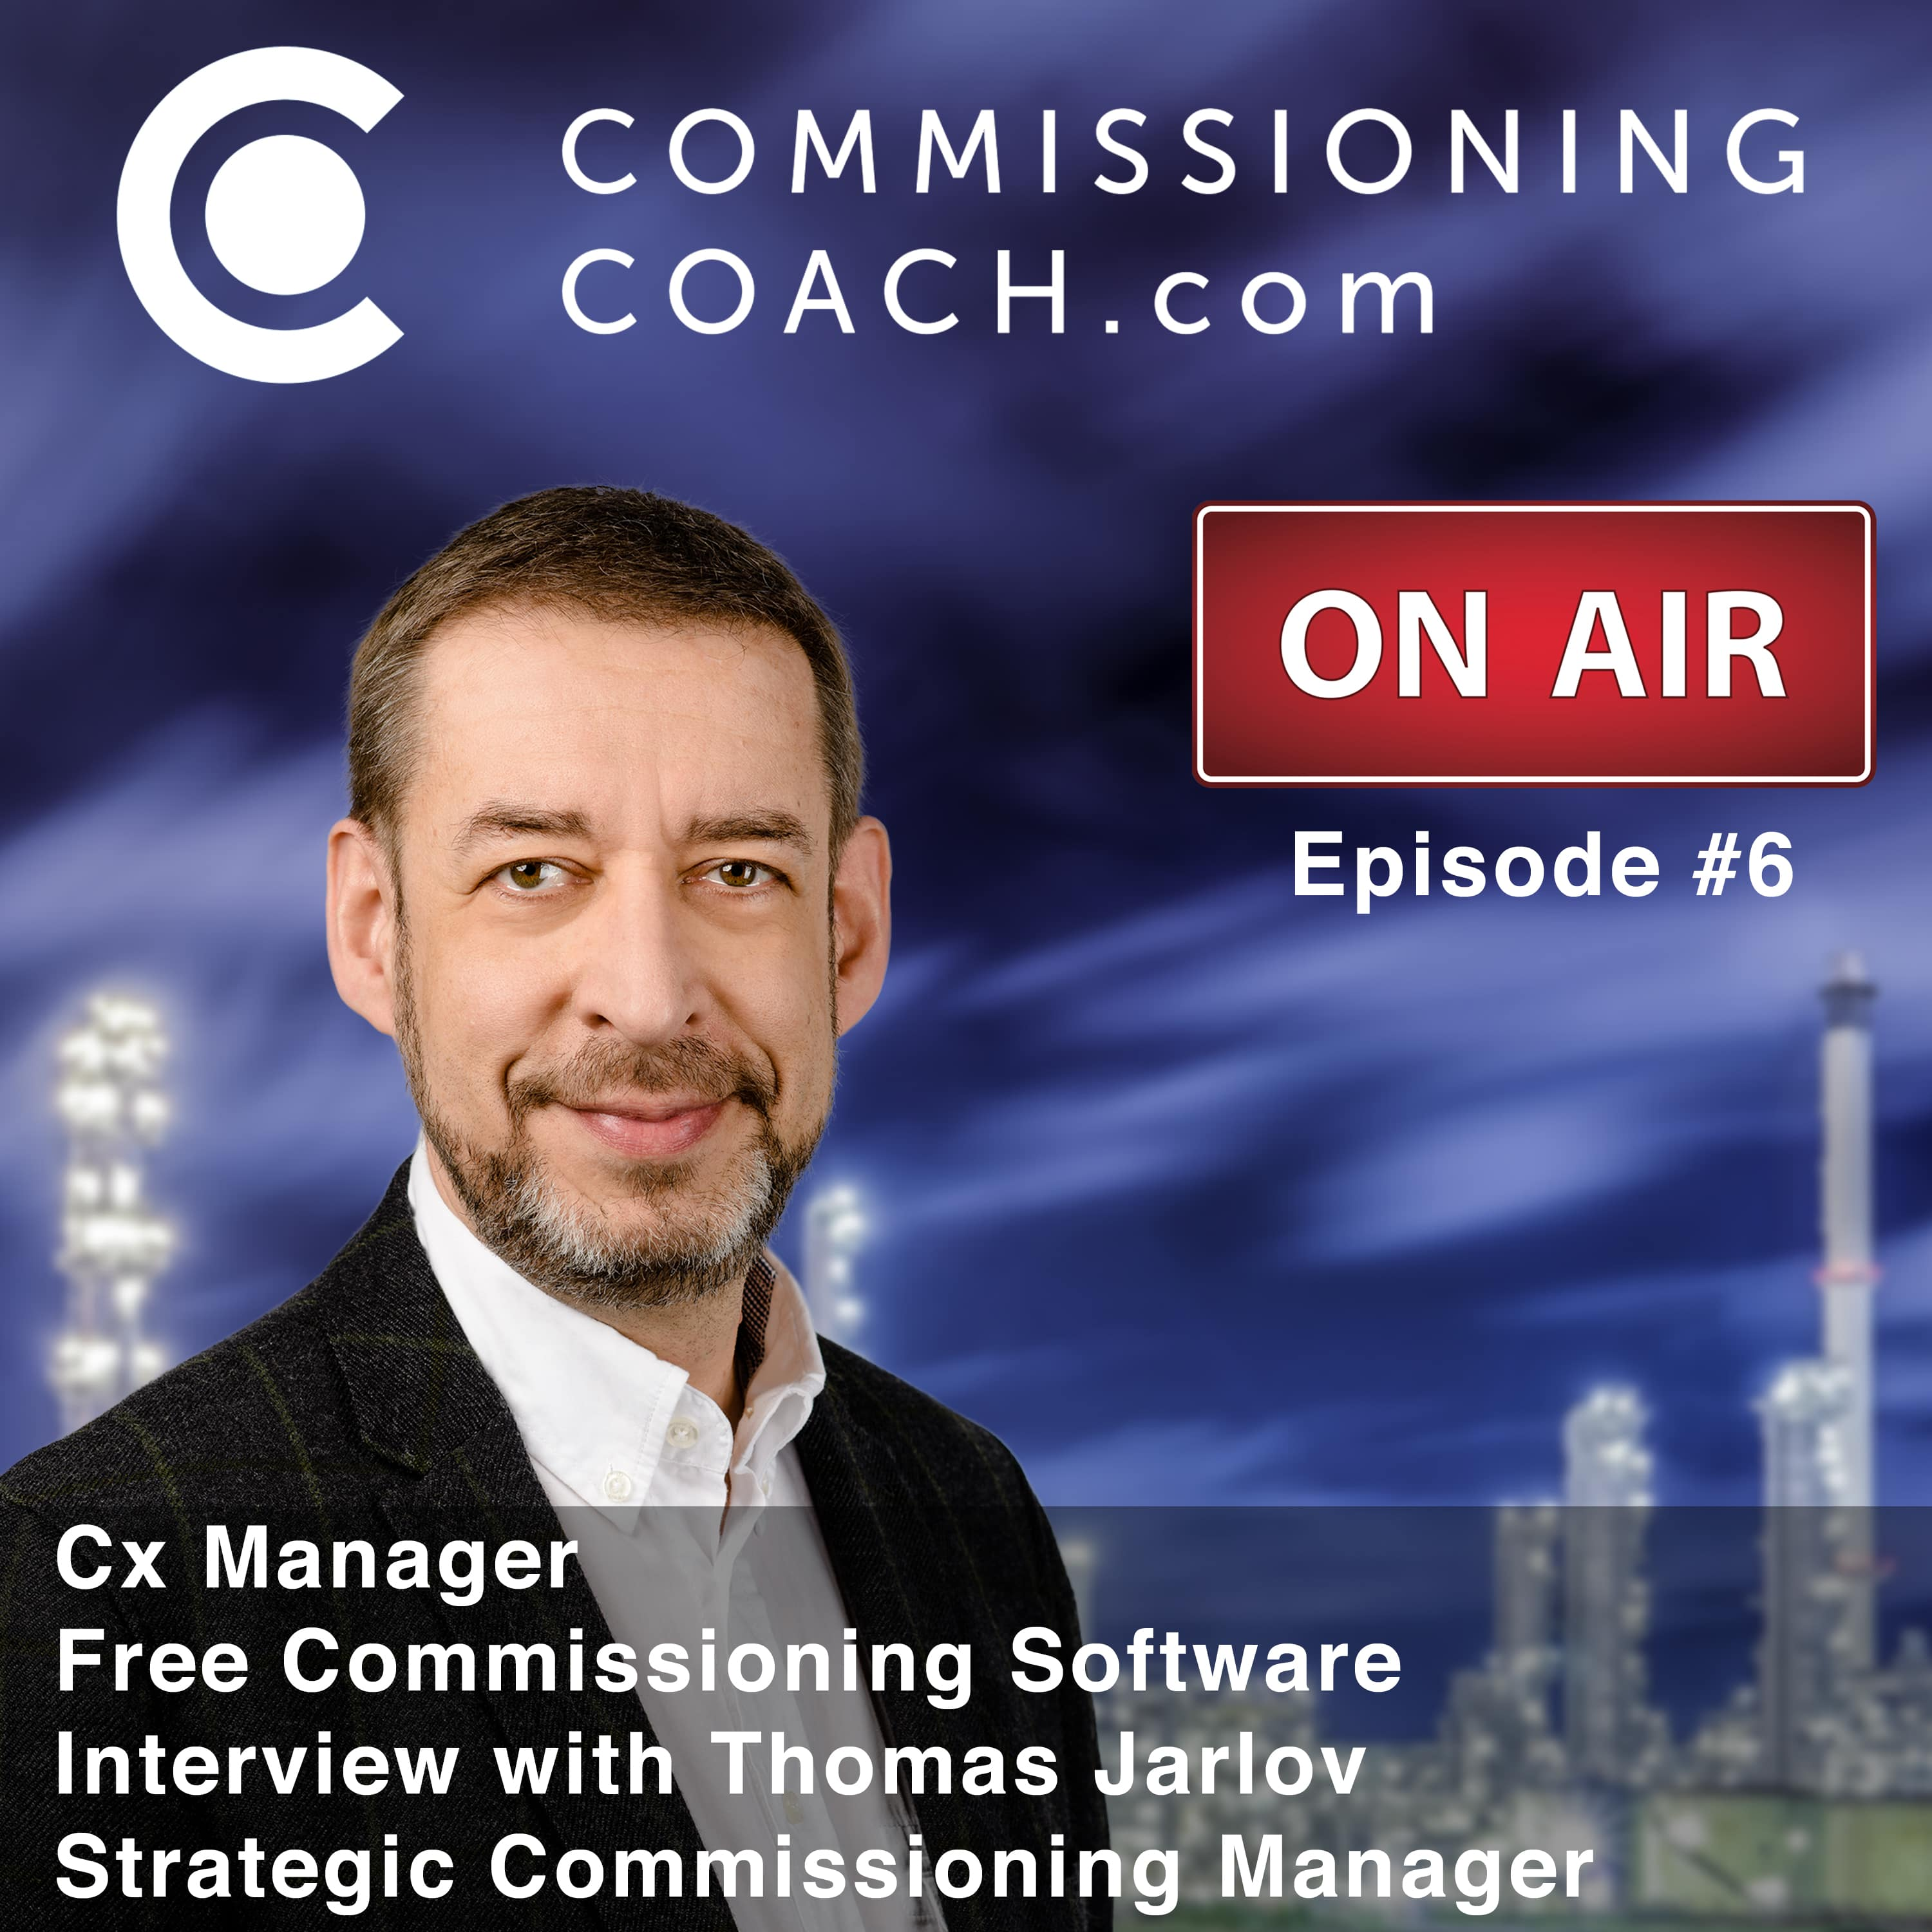 Commissioning Podcast - CommissioningCoach.com on Air